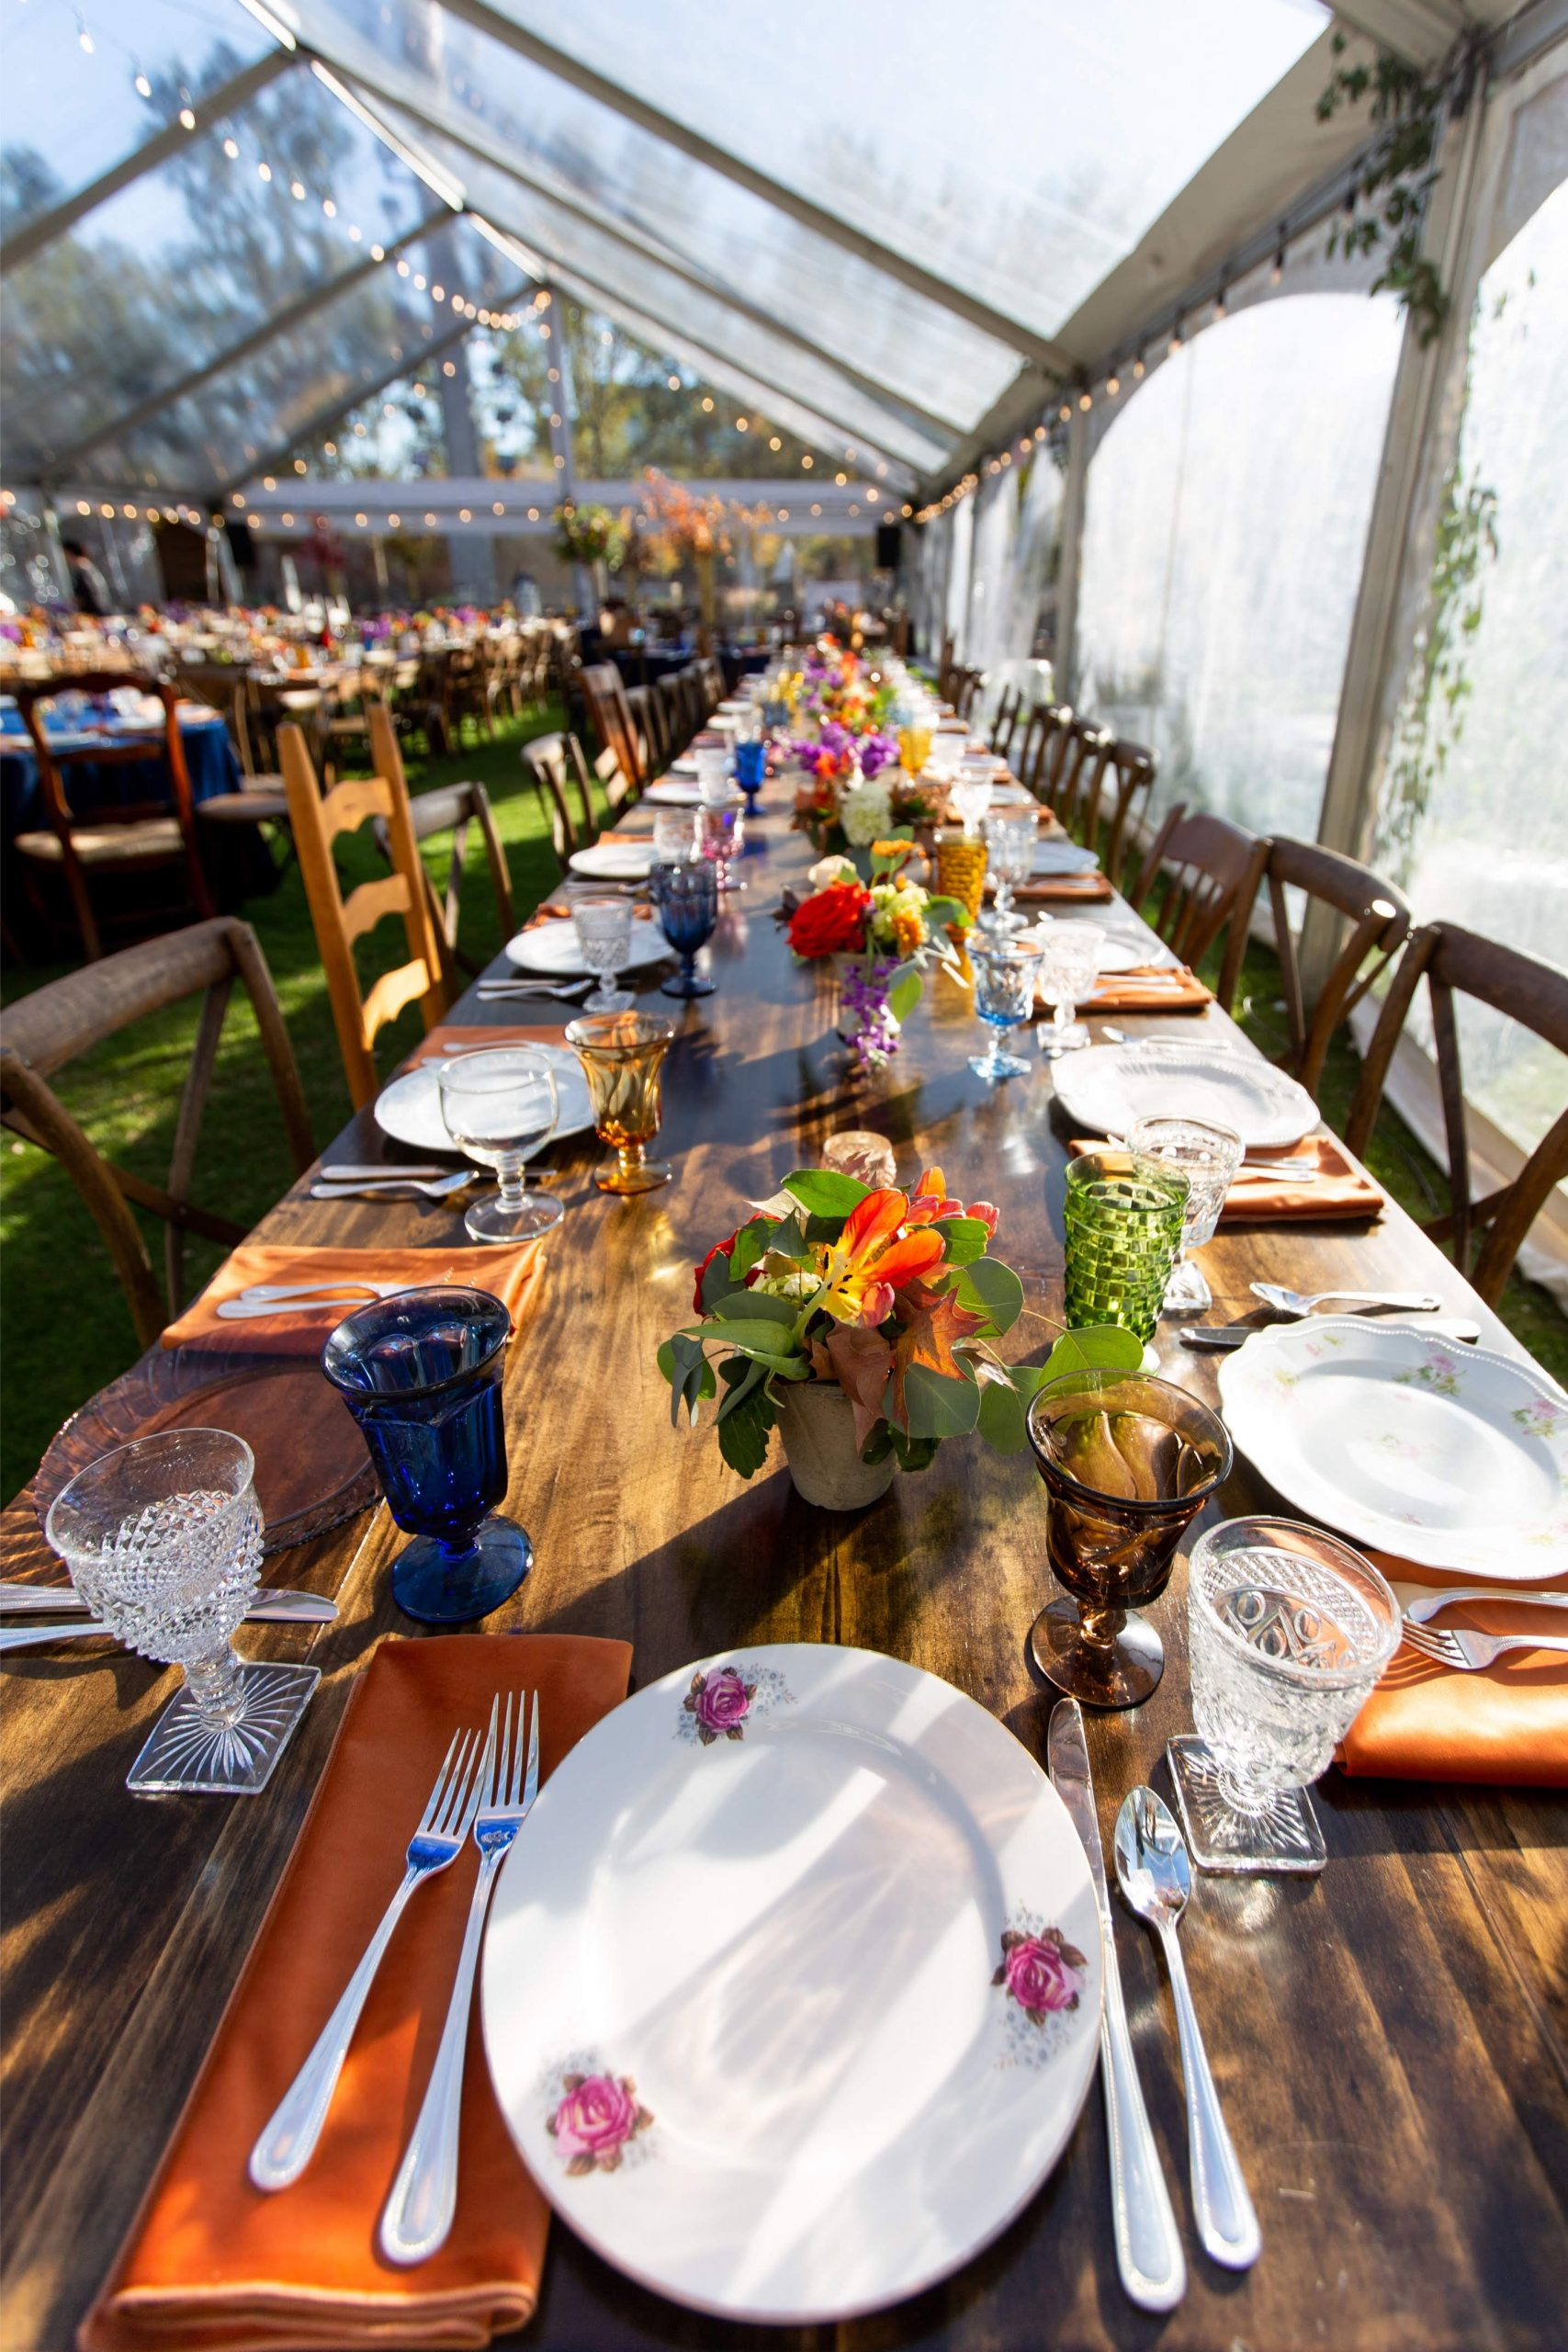 Large Friendsgiving table setting with antique china, colorful vintage goblets, and small floral arrangements inside a clear tend with string lights and greenery